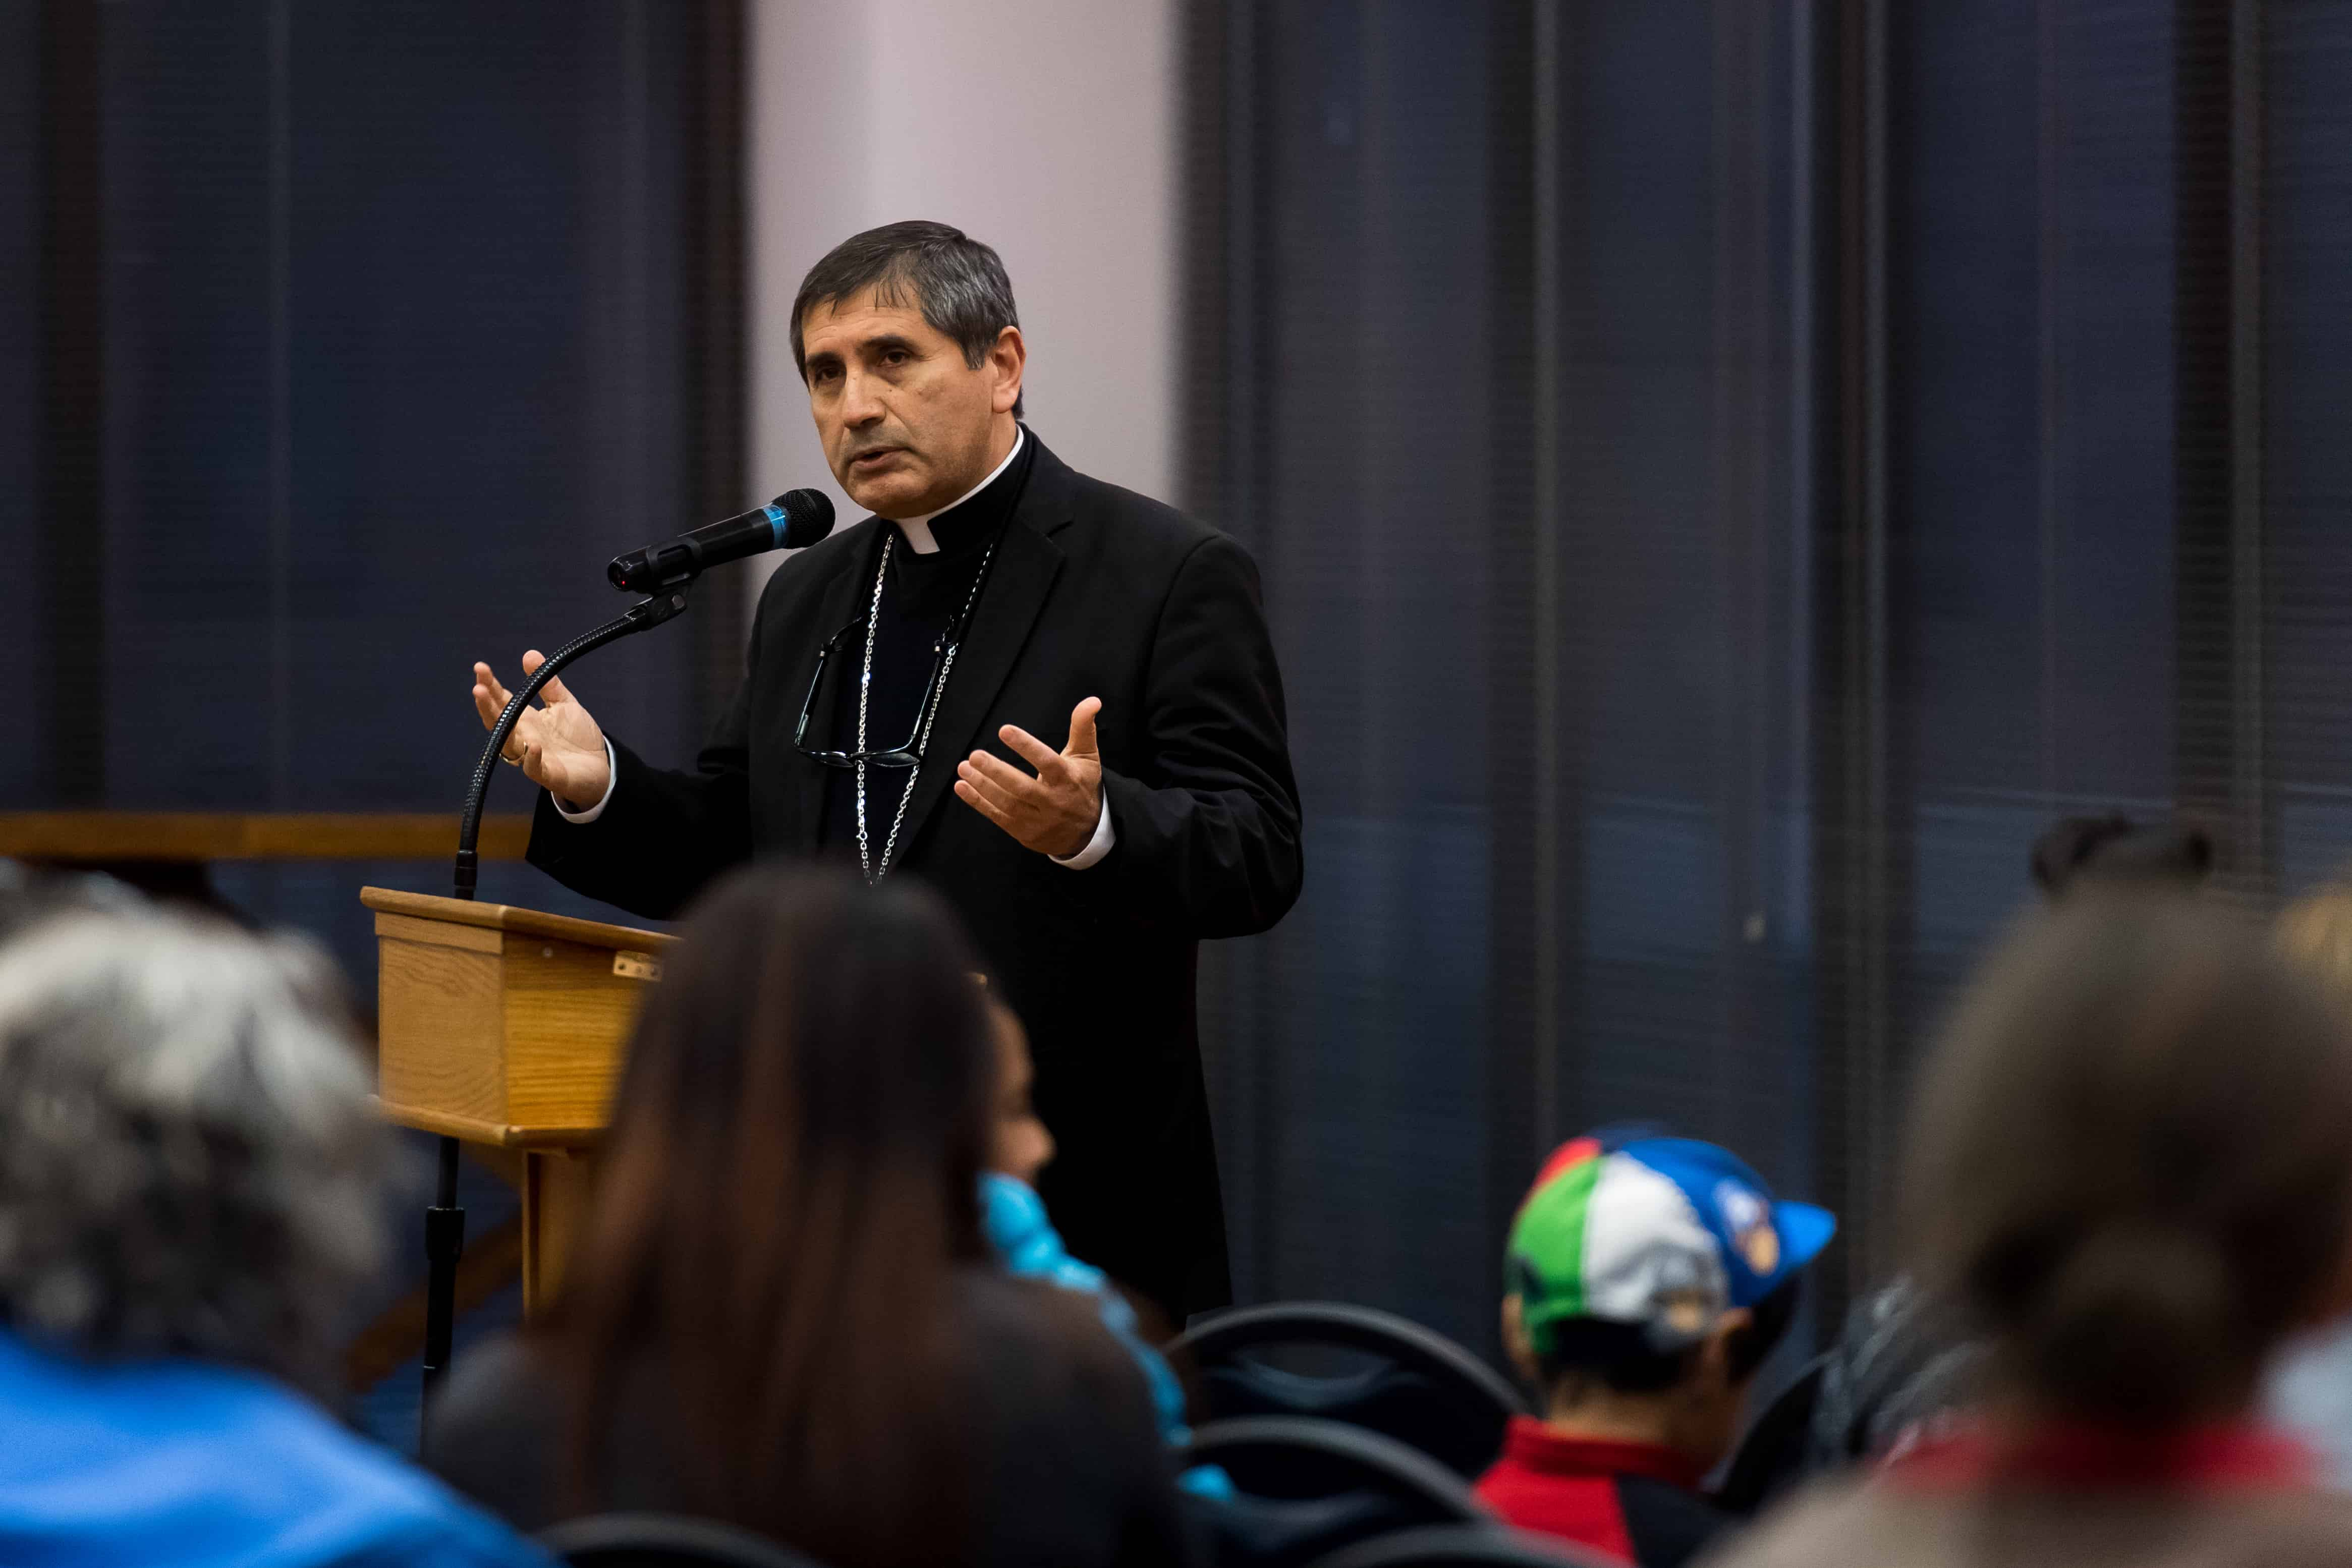 DENVER, CO - MARCH 28: Bishop Jorge Rodriguez co-hosts an information session on immigration with the Consuls General of Guatemala, Mexico and Peru at St. Mary Parish on March 28, 2017, in Greeley, Colorado. (Photo by Anya Semenoff/for Denver Catholic)